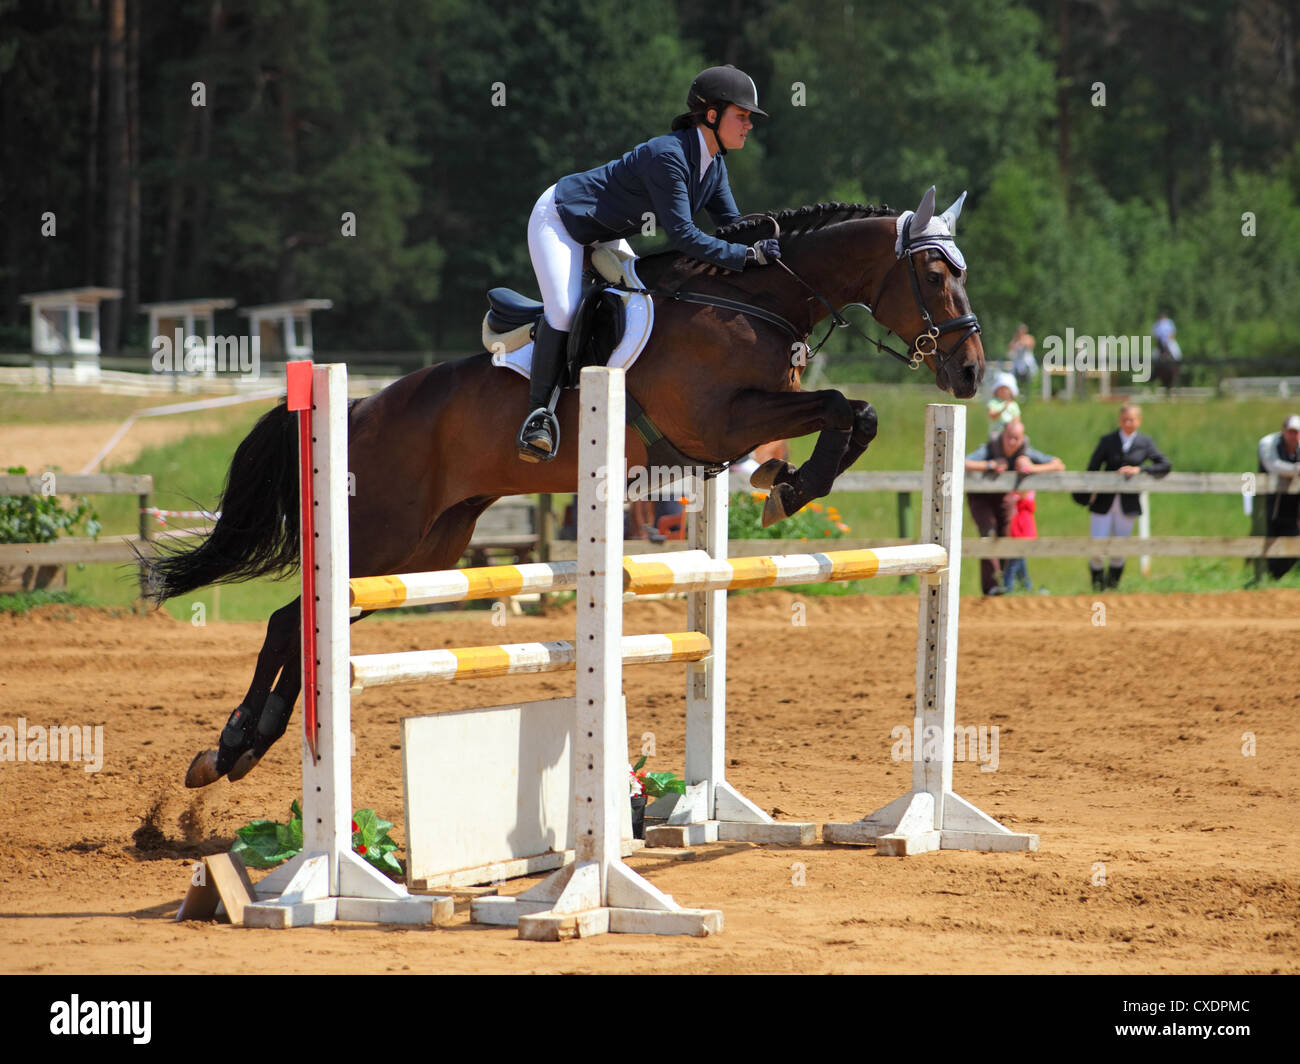 Young girl jumping with sorrel horse - Stock Image